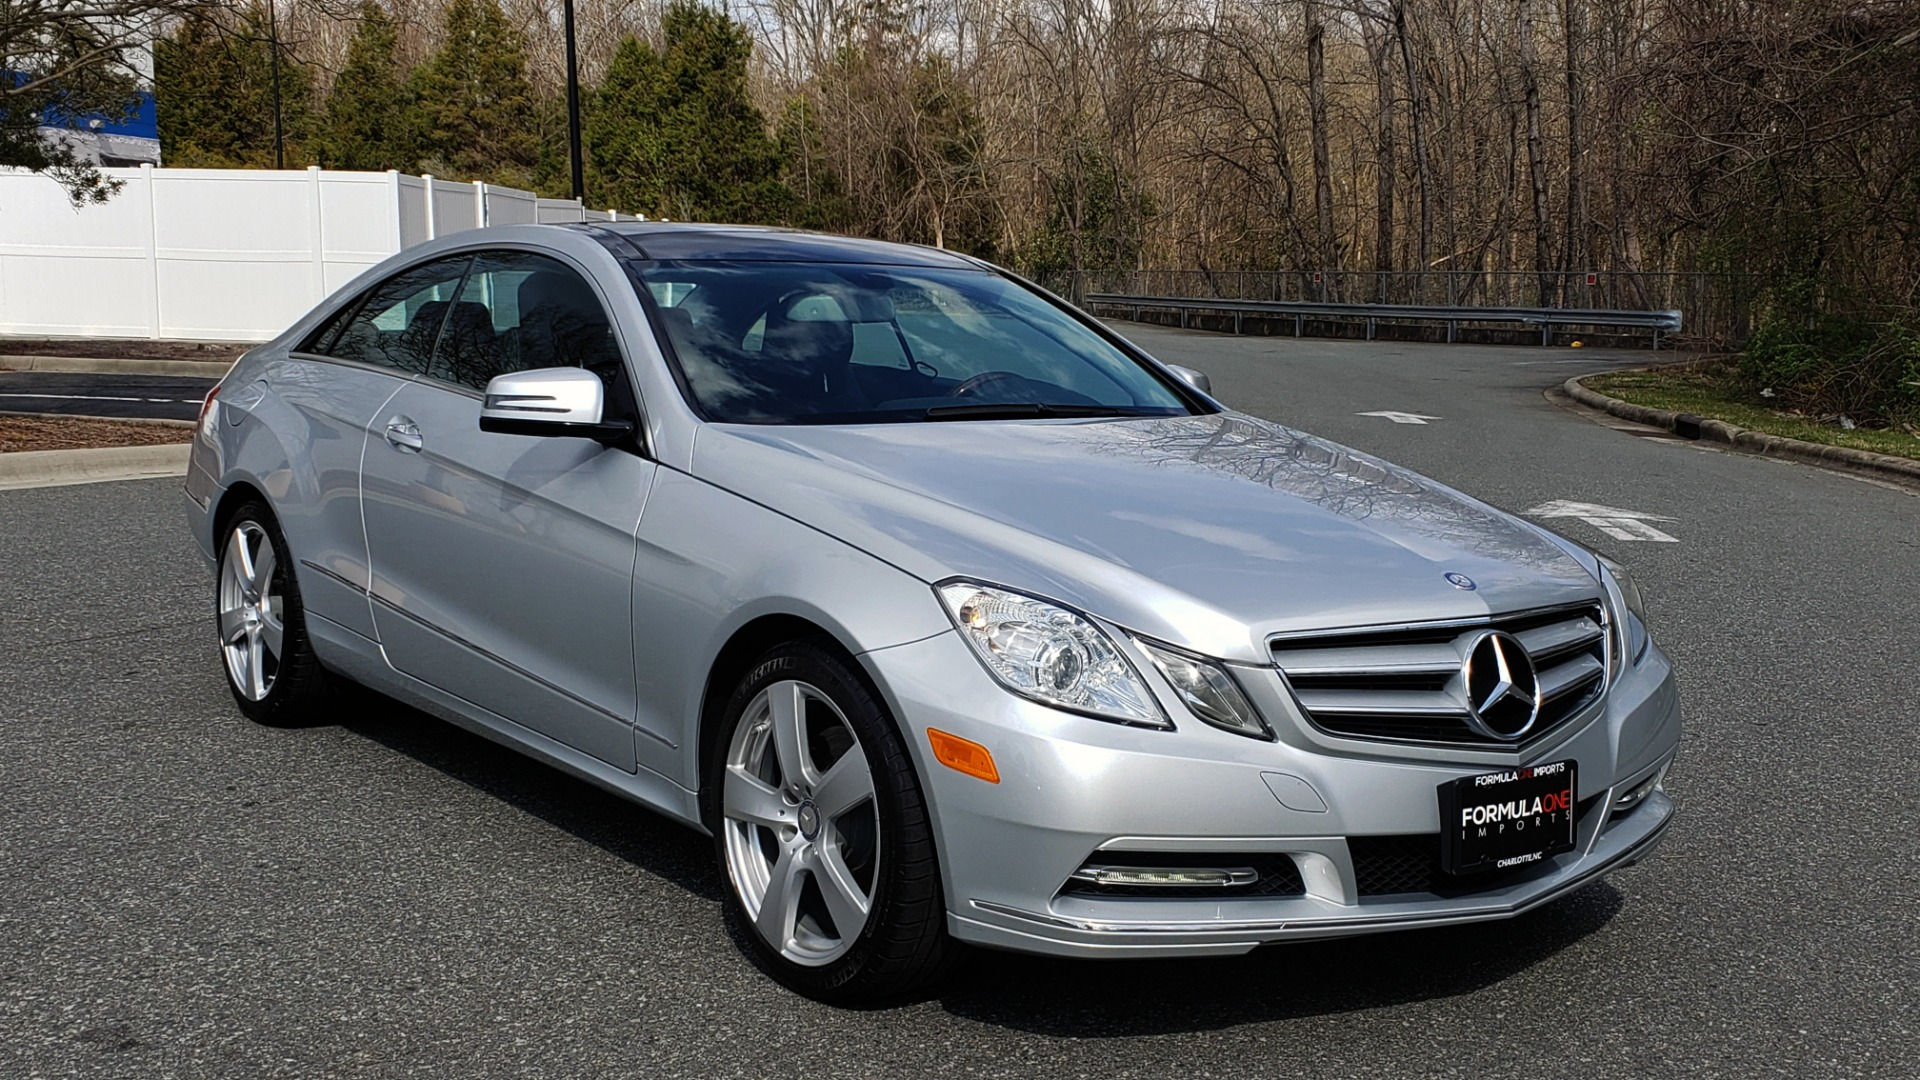 Used 2013 Mercedes-Benz E-CLASS E 350 COUPE PREM / NAV / PANO-ROFF / KEYLESS-GO / REARVIEW for sale Sold at Formula Imports in Charlotte NC 28227 5